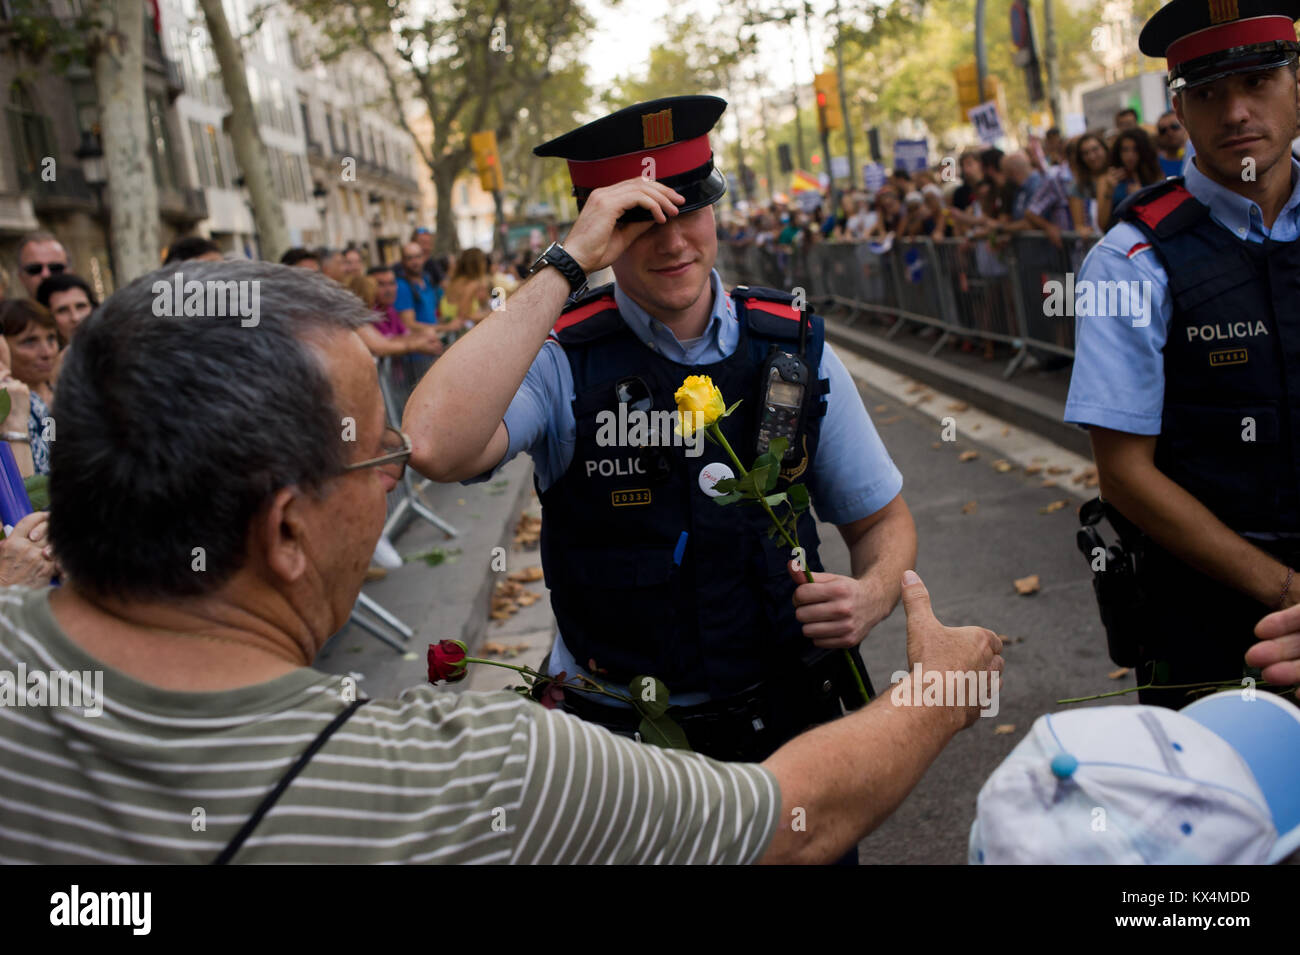 August 26 2017 barcelona catalonia spain in barcelona catalan august 26 2017 barcelona catalonia spain in barcelona catalan police officers receive roses and greetings during a march against terror attacks m4hsunfo